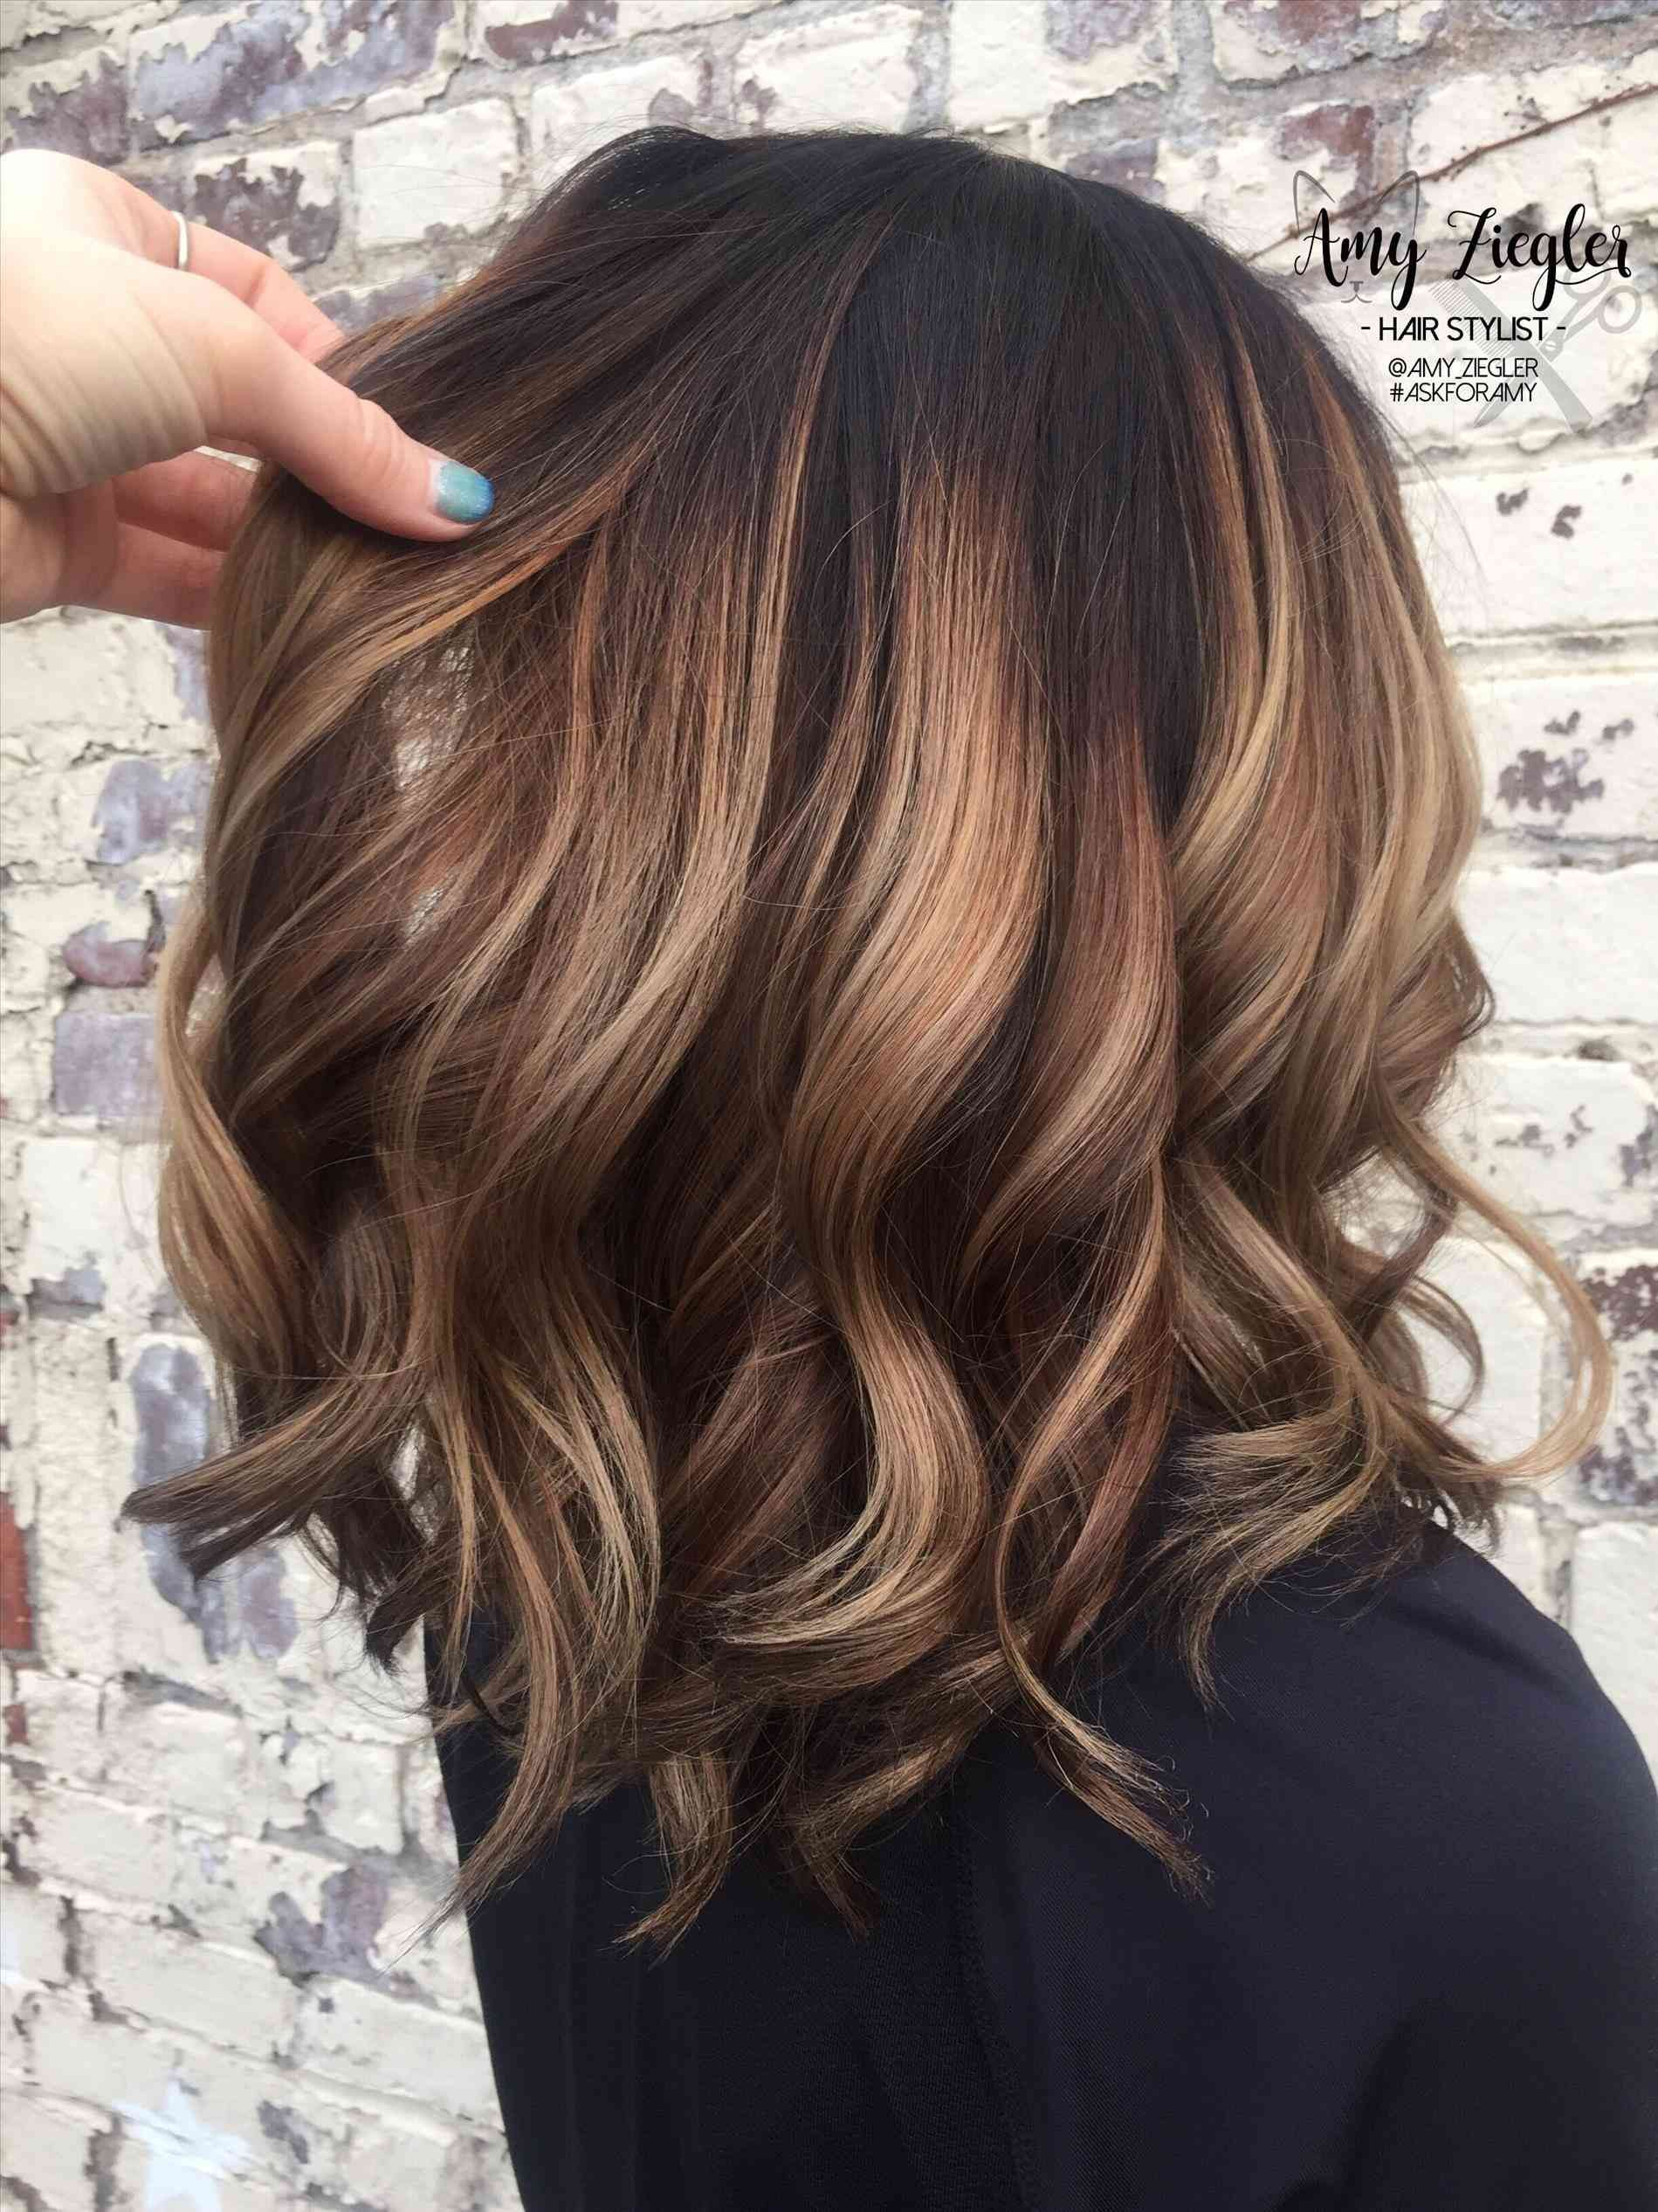 Dark Brown Hair With Blonde Hairideas Rooted Balayage Ash Roots Beach Waves Rooted Short Hair Balayage Dark Hair Styles Brown Hair Balayage Medium Hair Styles